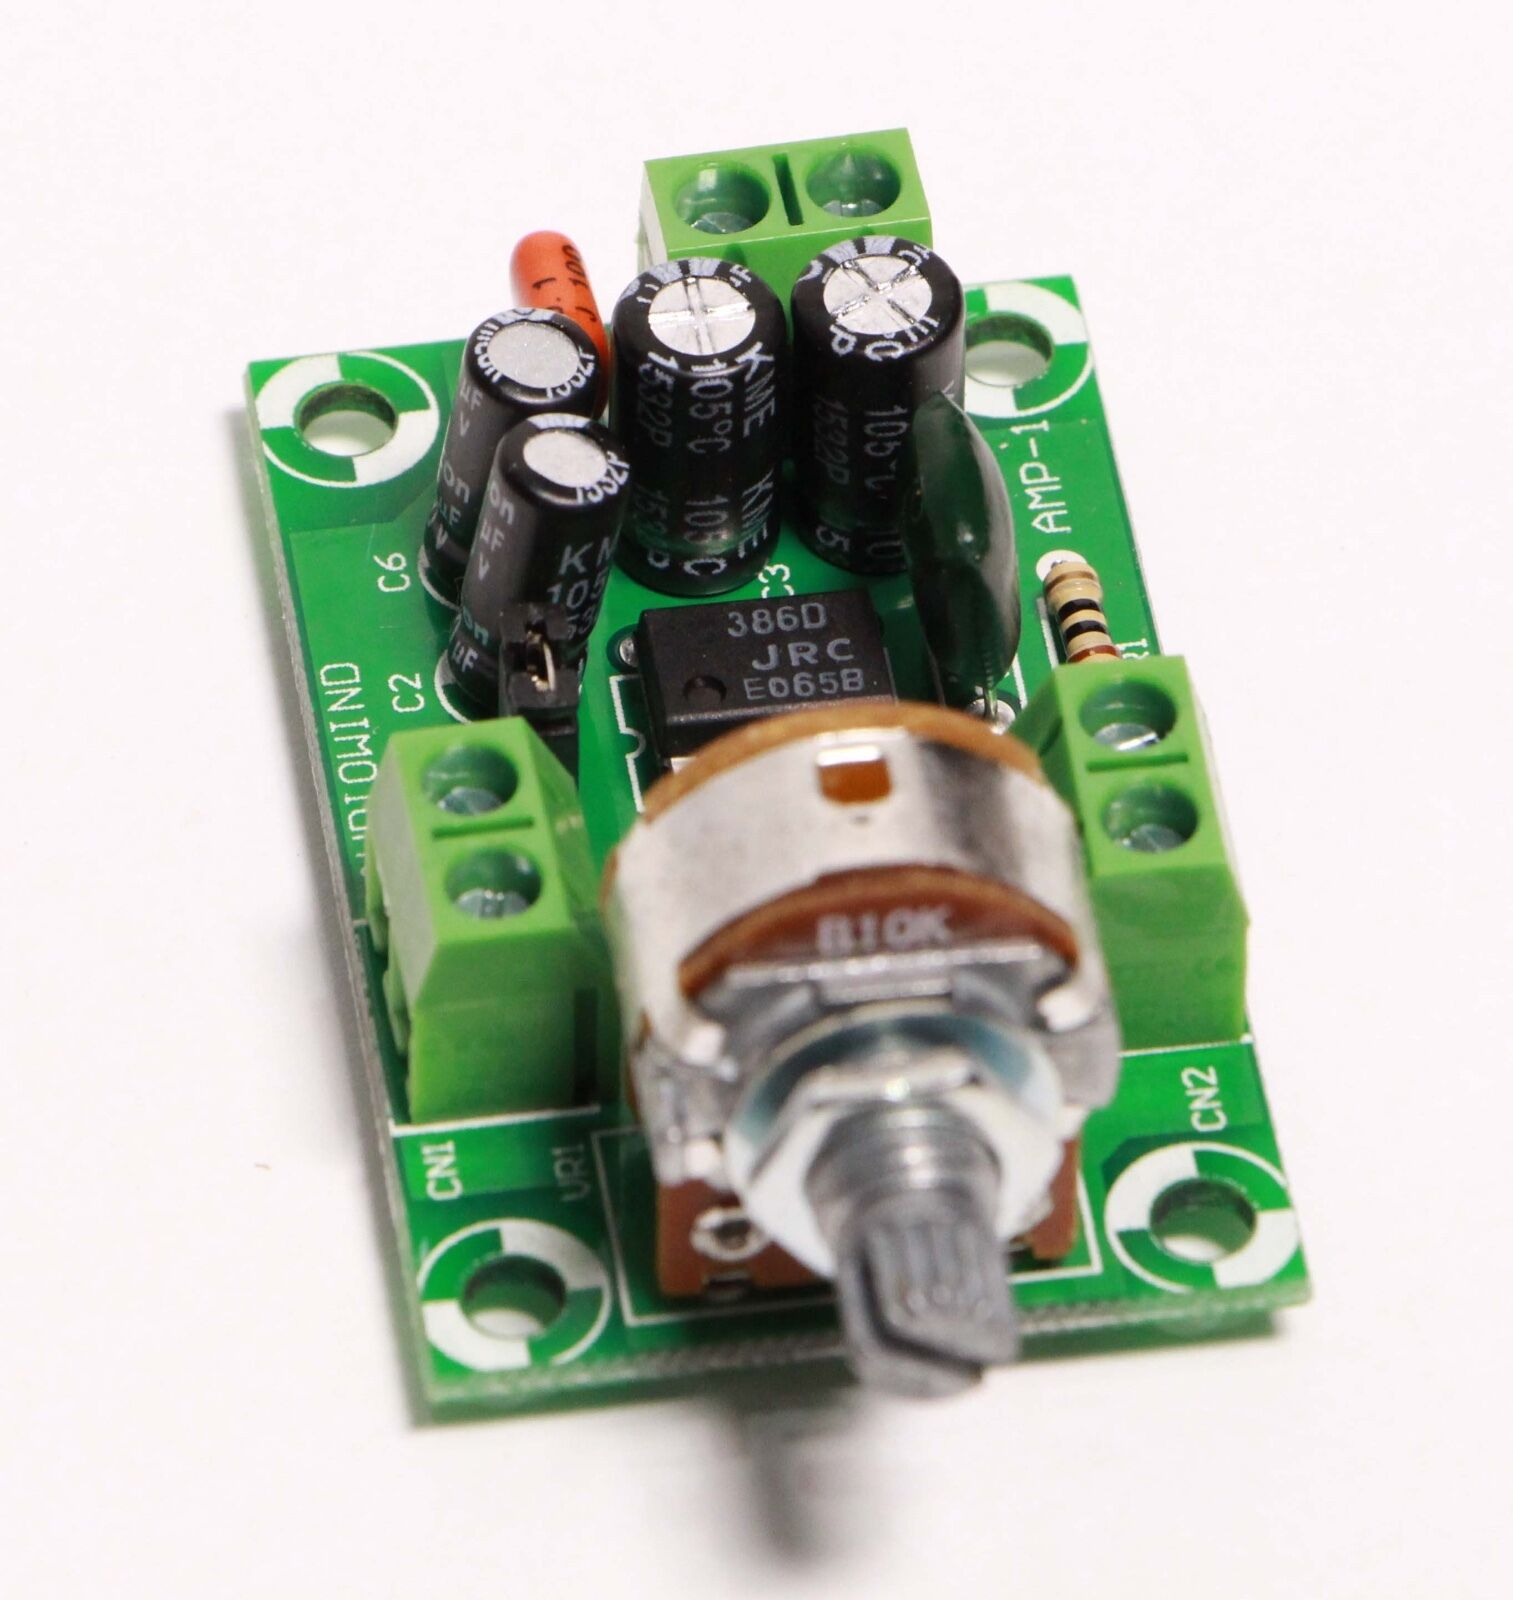 Cigar Box Guitar Amplifier Kit Battery Powered Amp Circuit Board Us Power Cableusa Cableamerica Cable Bk Industrial Jrc 386